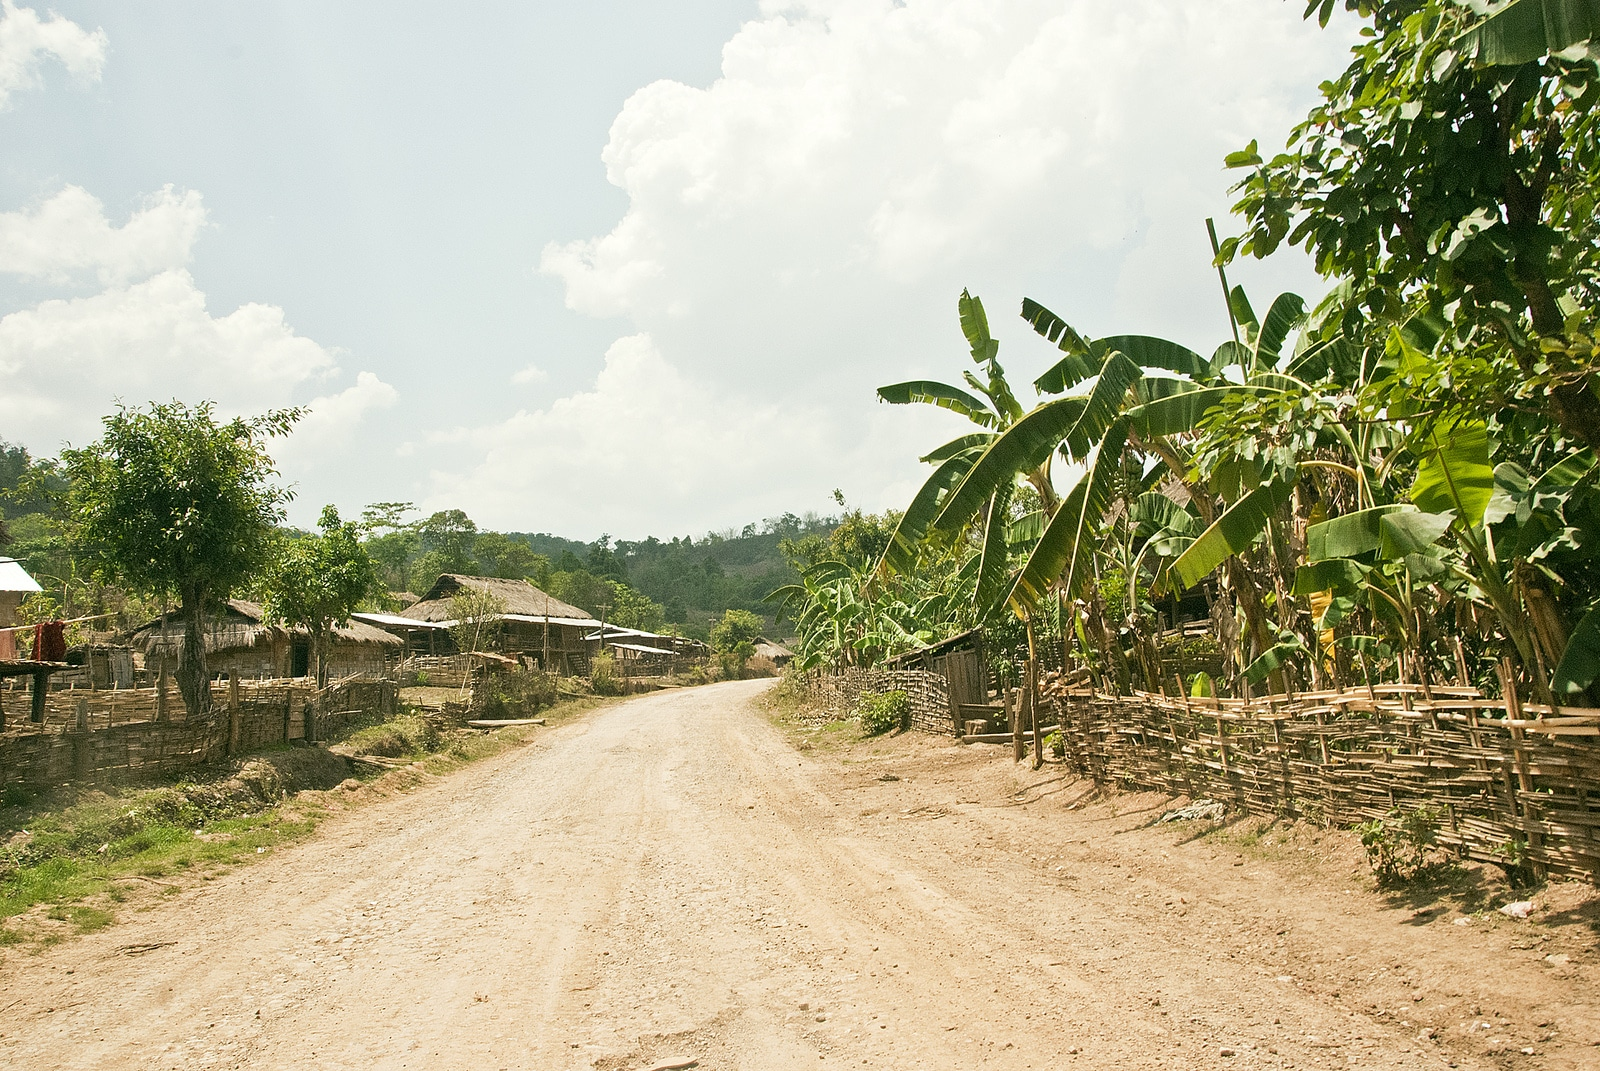 Dirt roads in Hsipaw, Myanmar - Lost With Purpose